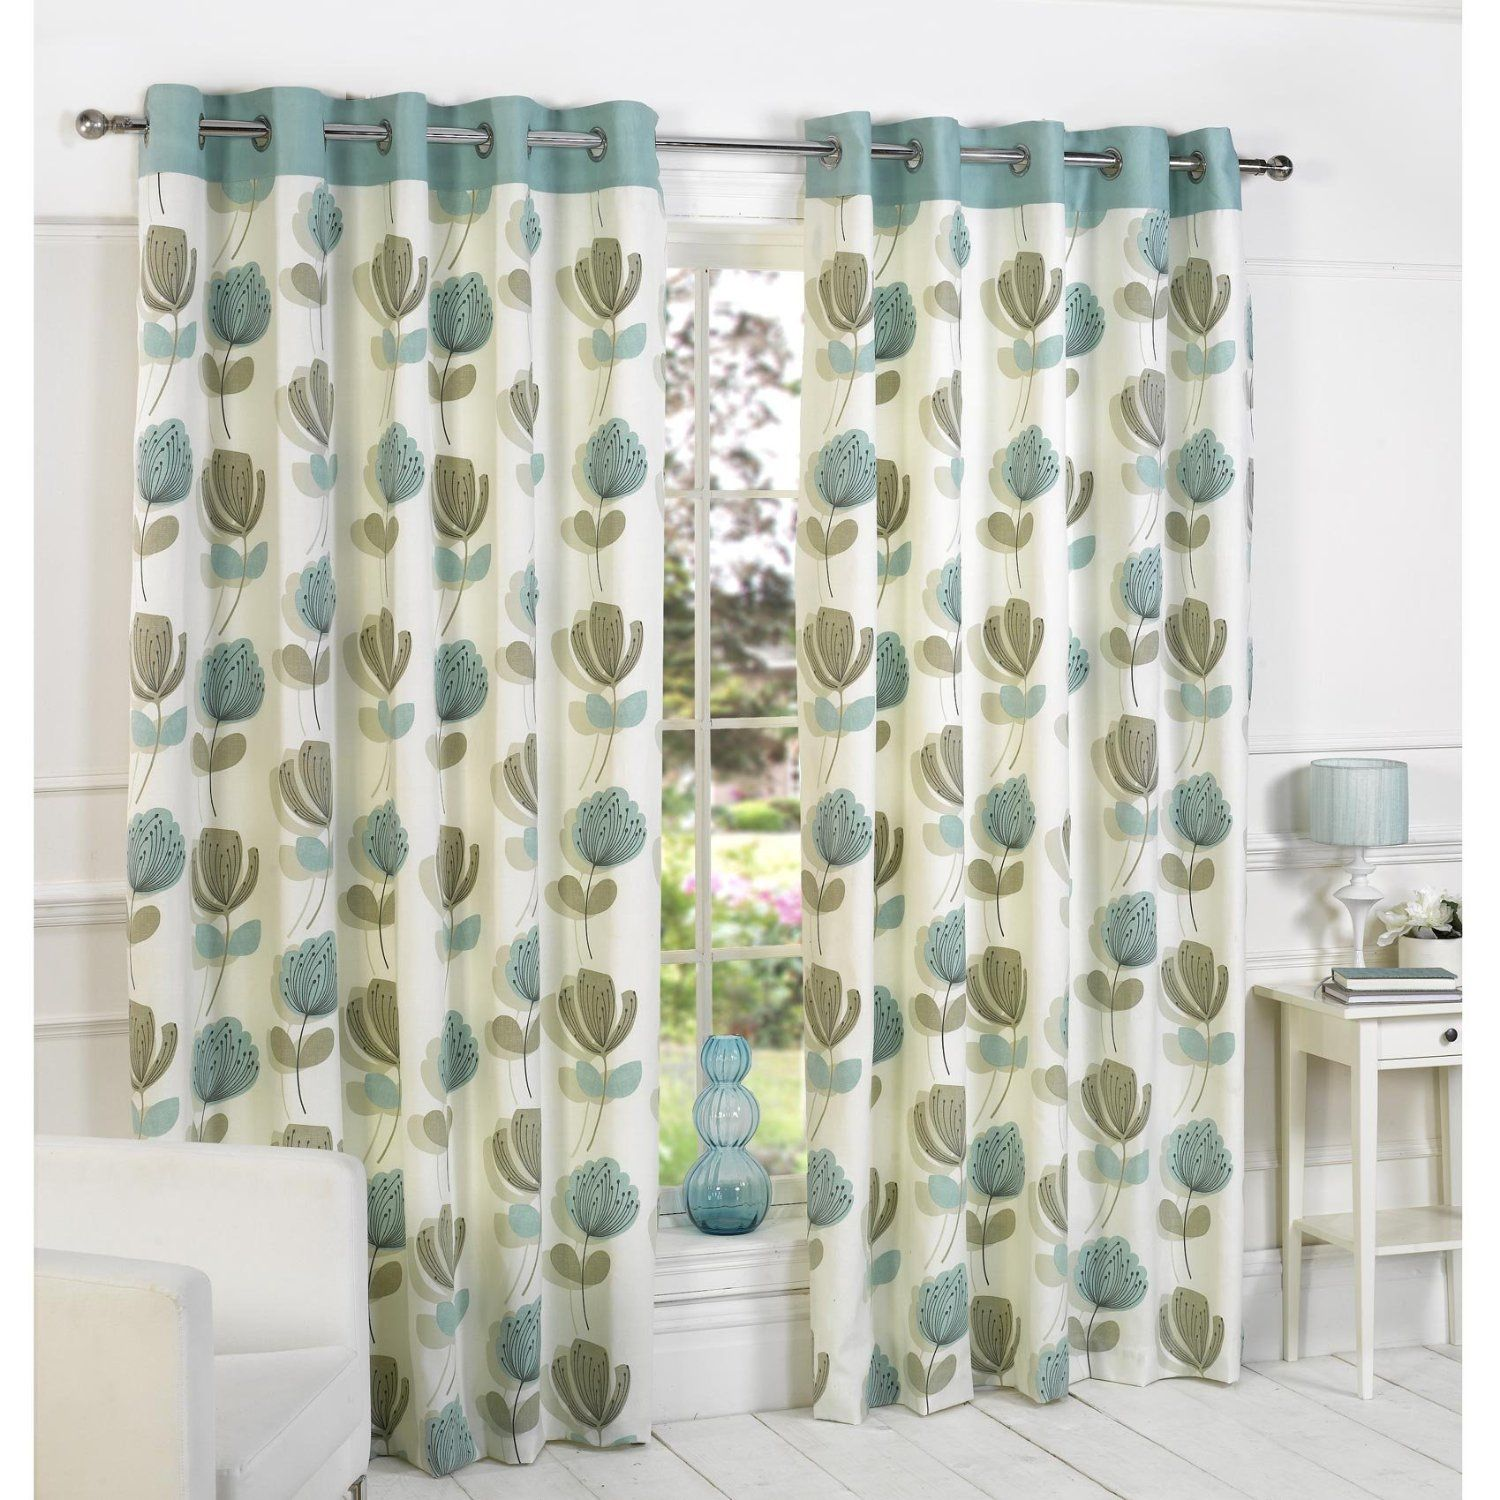 Lotti Modern Retro Floral Printed Design Readymade Lined Eyelet Curtains Cream Duck Egg Blue 90 X 90 Amazon Co With Images Curtains Printed Curtains Cream Curtains